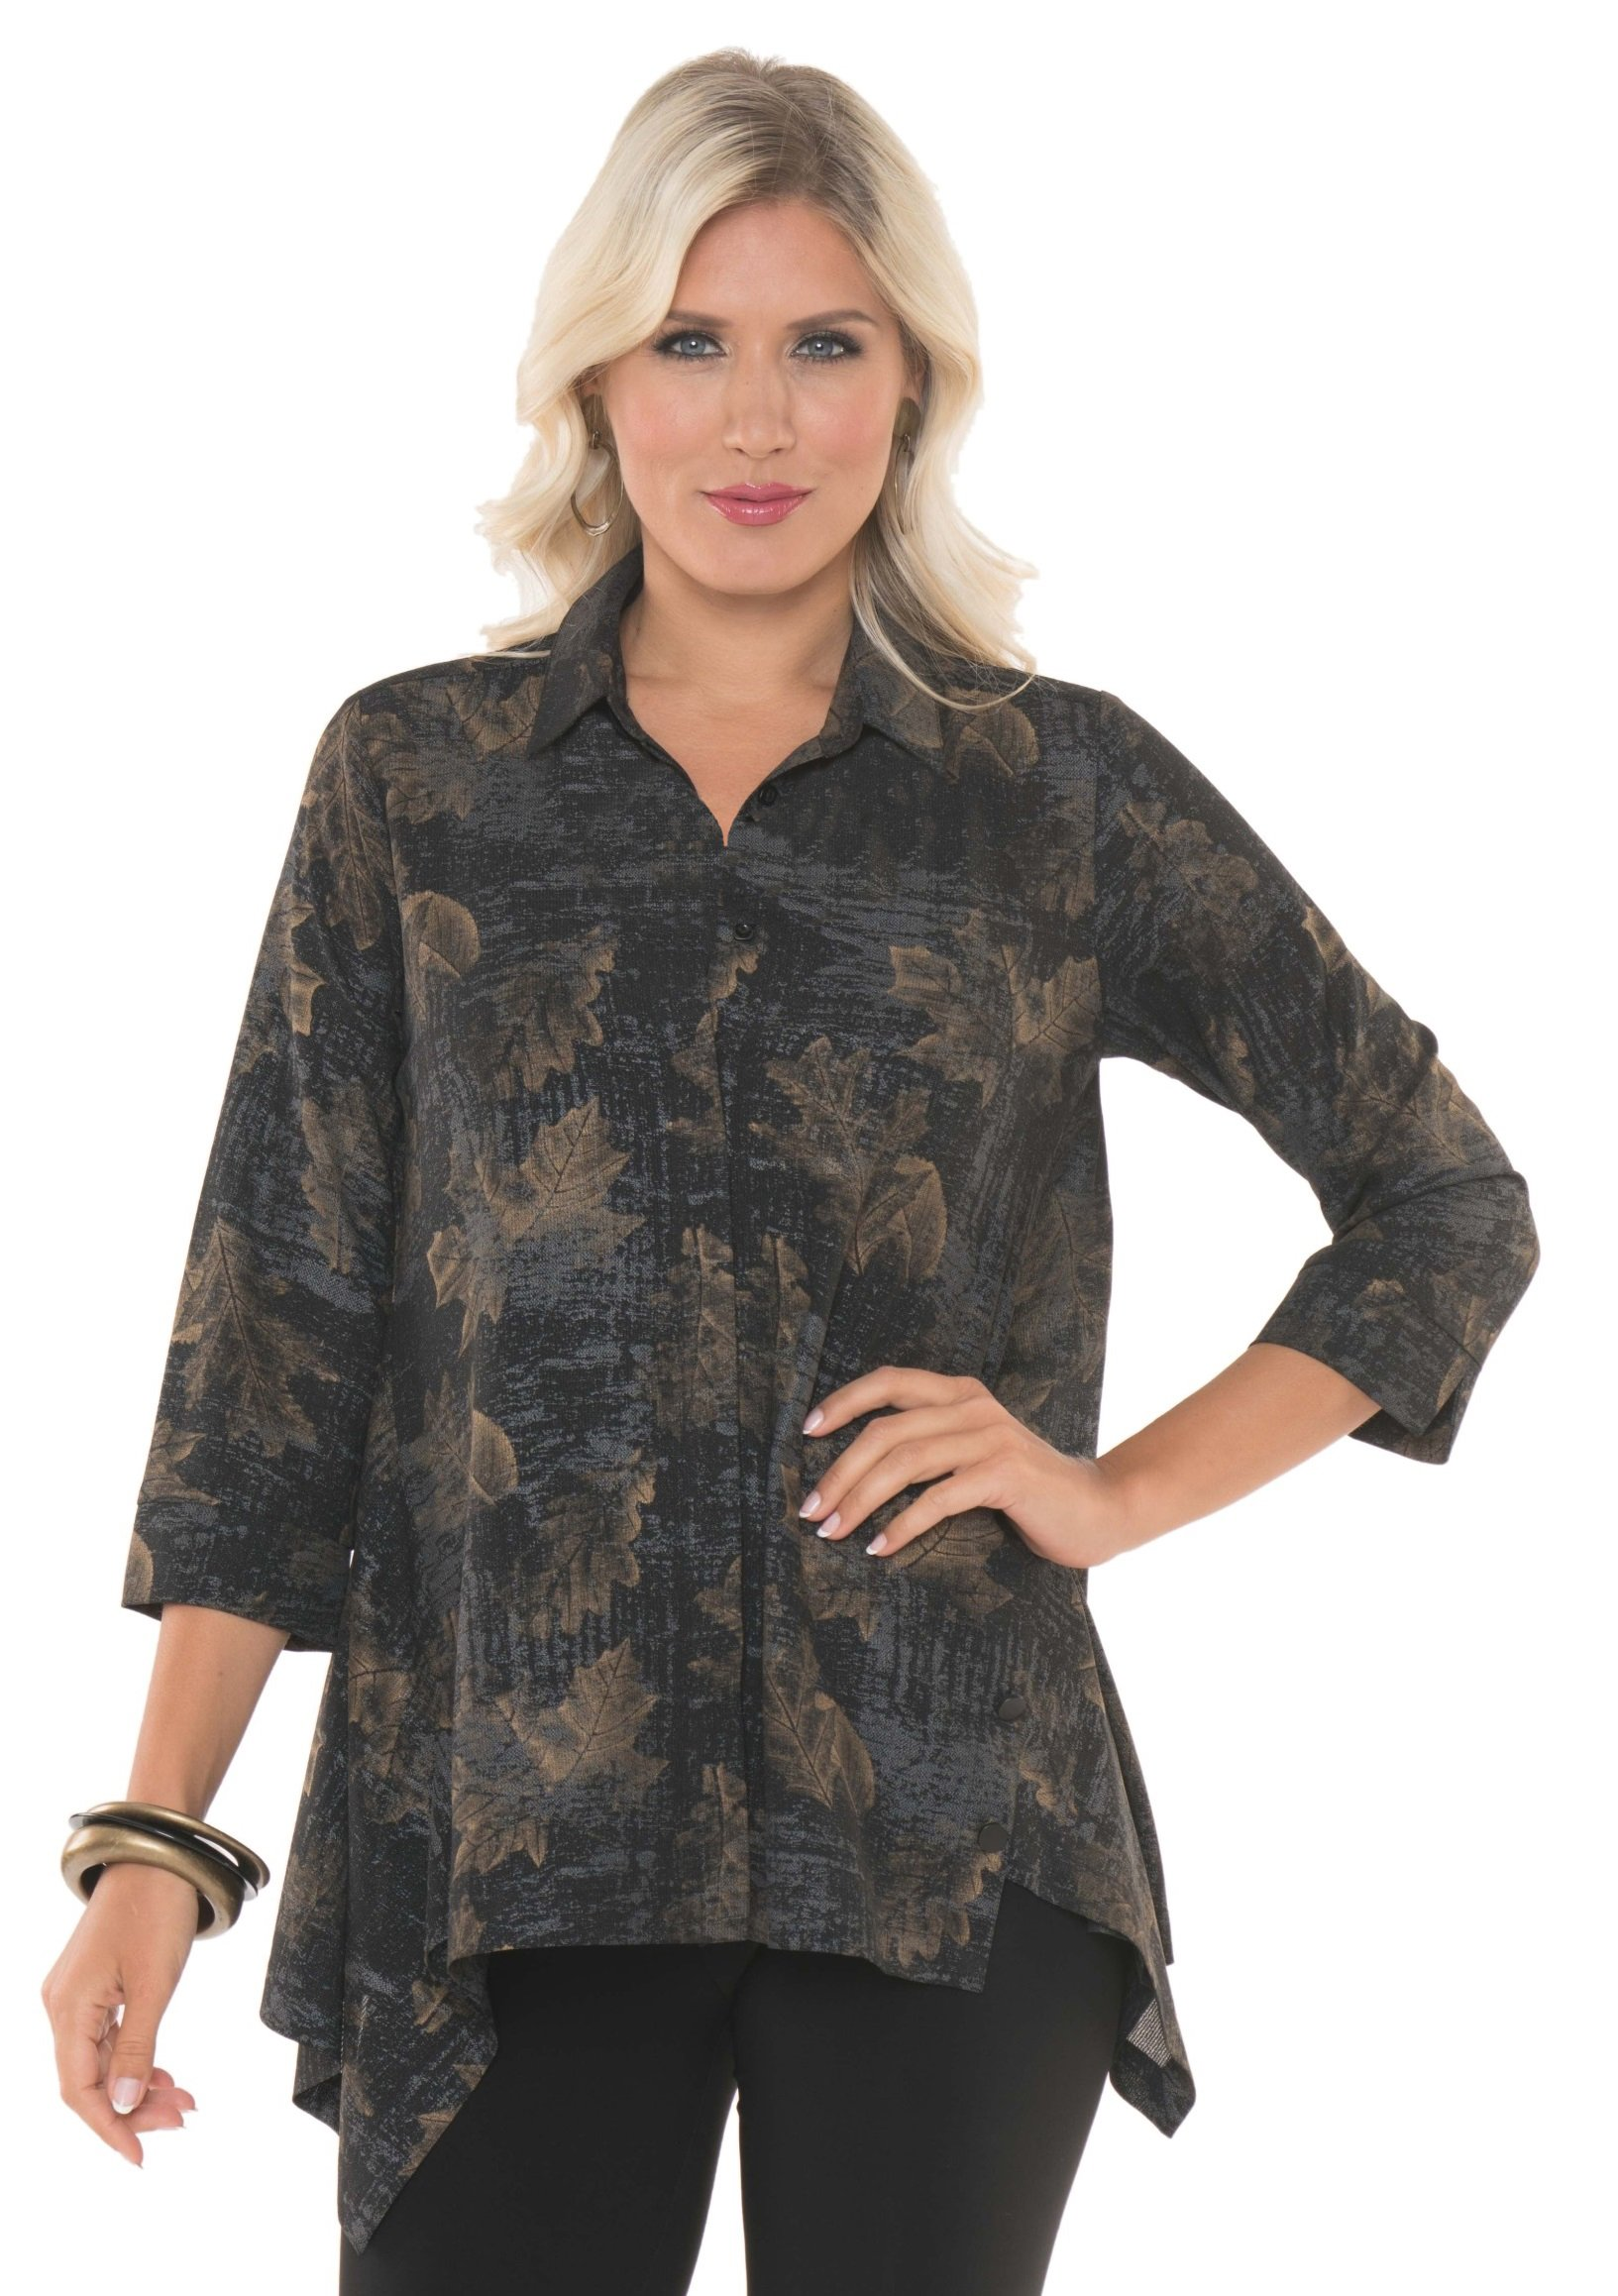 Lior Paris Women's Holiday Tunic Three Quarter Sleeve with Spread Collar Buttons down Loose Blouse